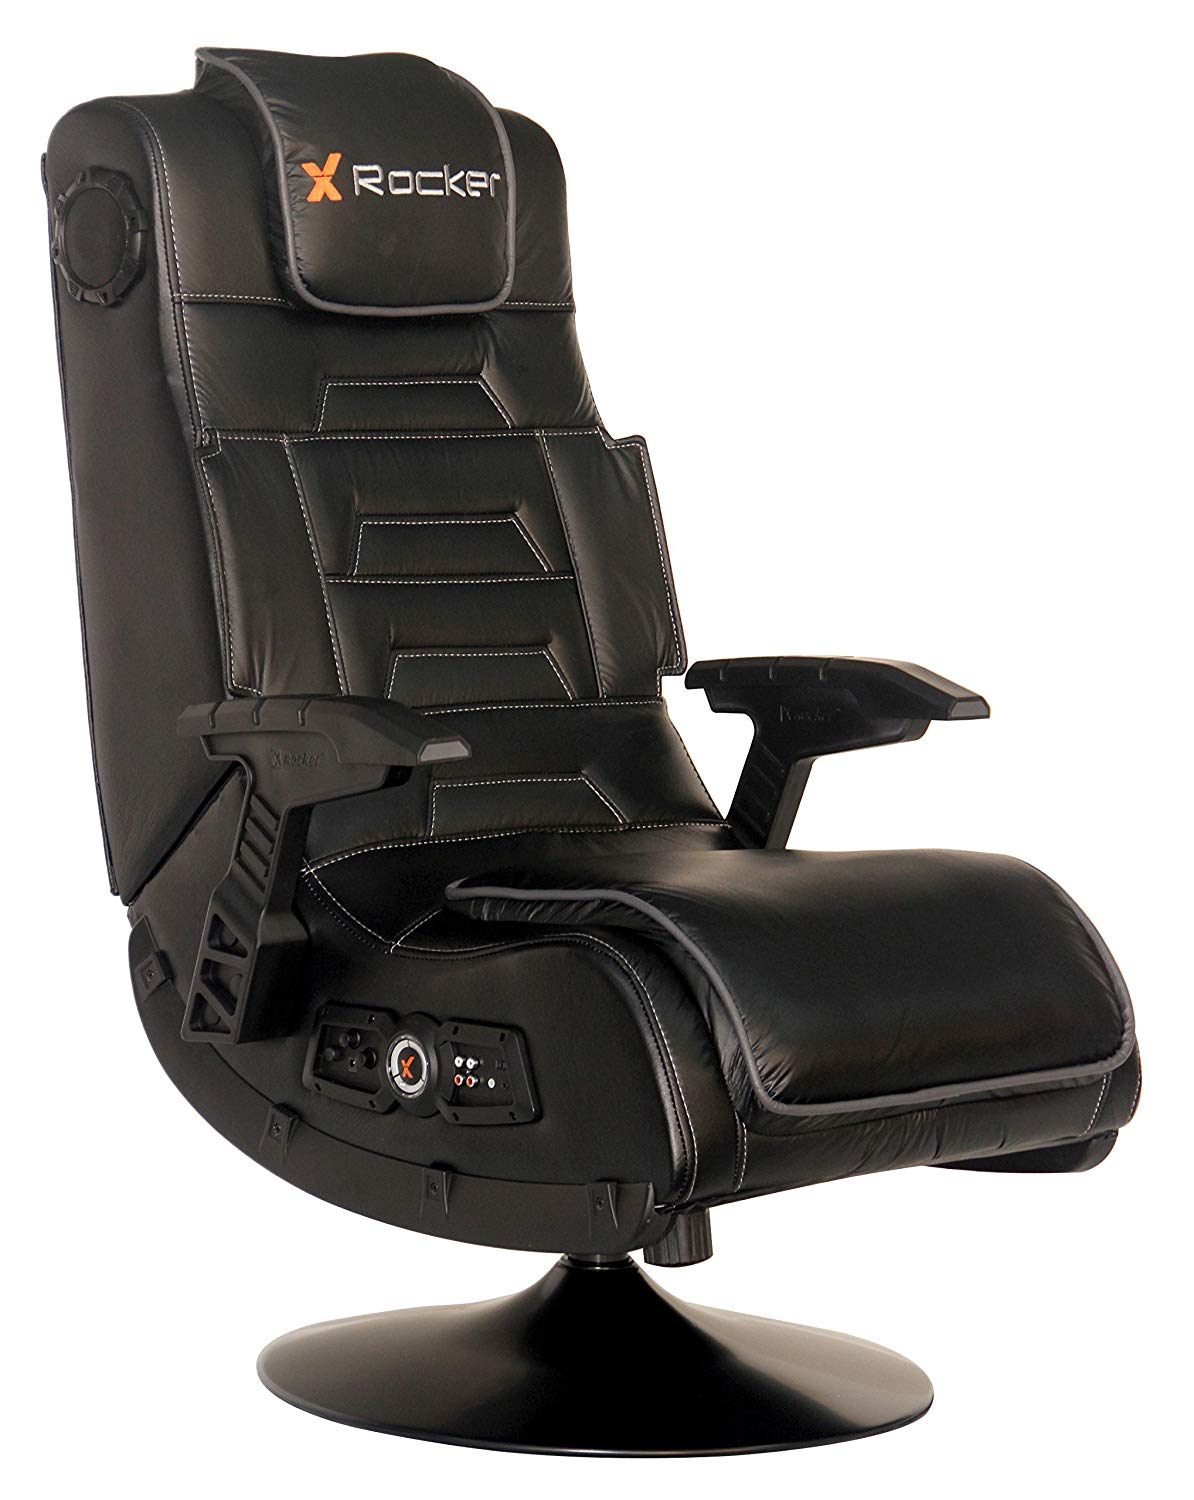 Best Gaming Chairs for Adults  The Top Chair Reviews 2018